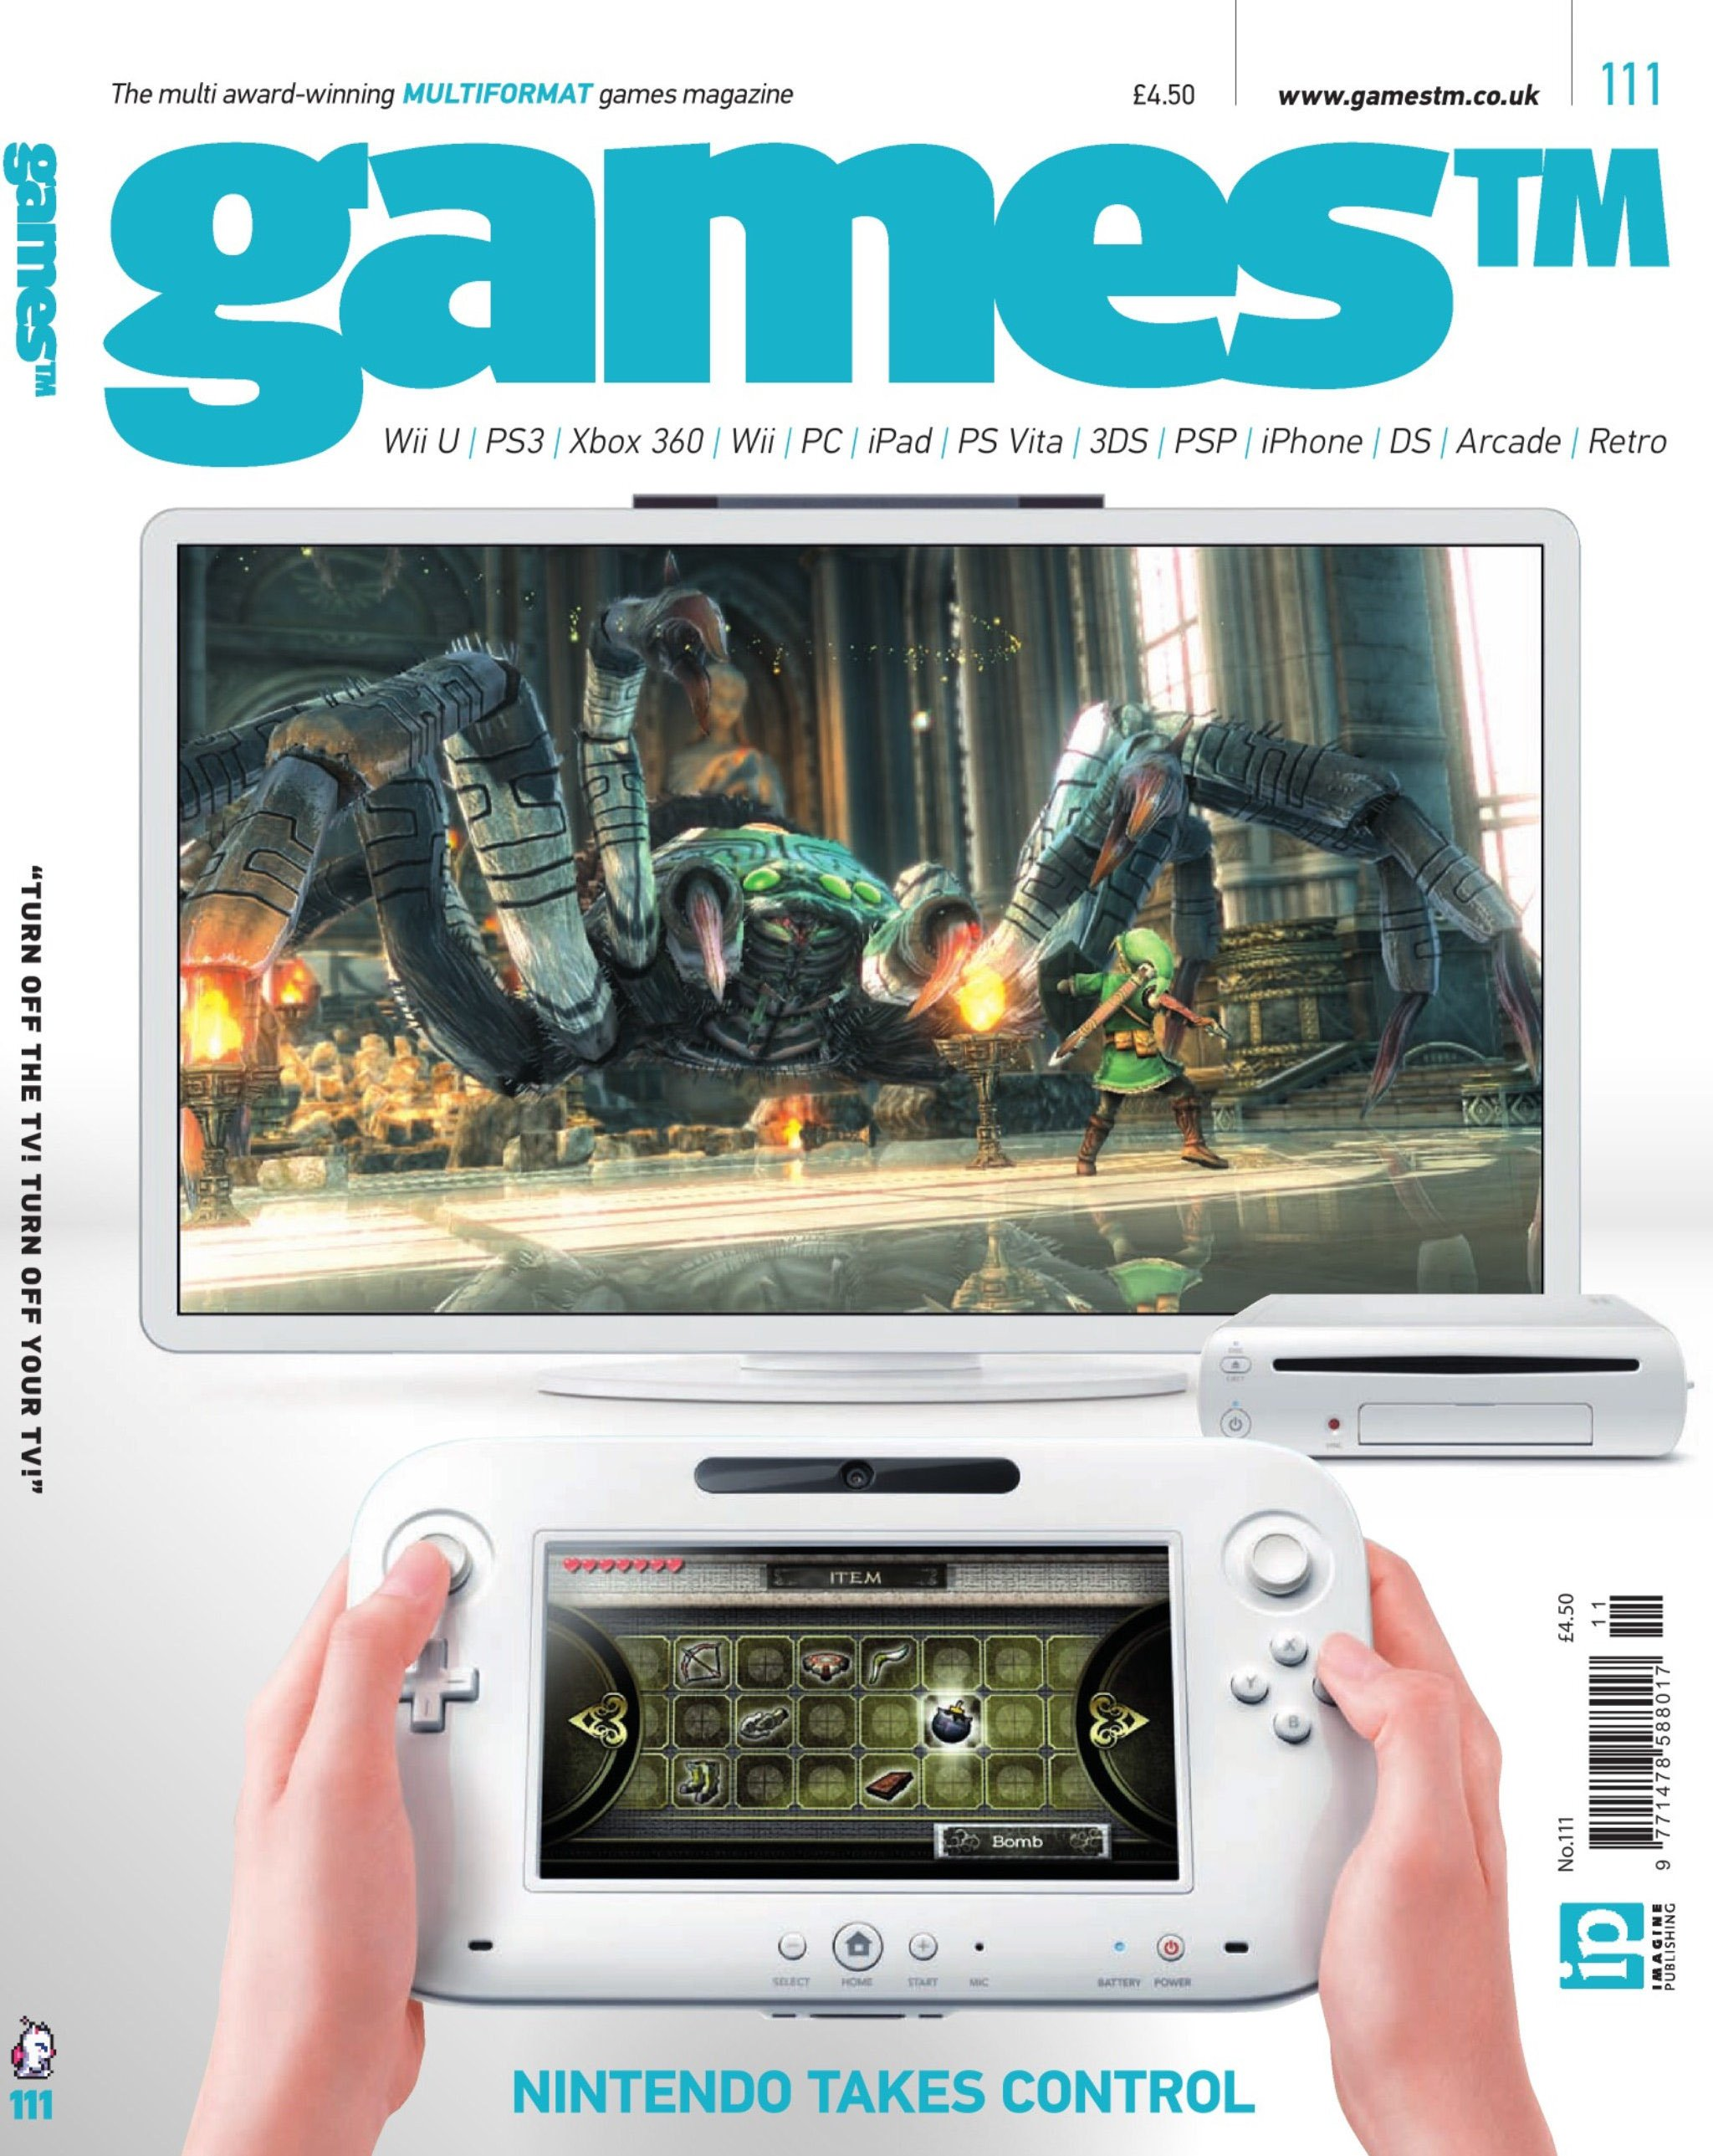 Games TM Issue 111 (July 2011)